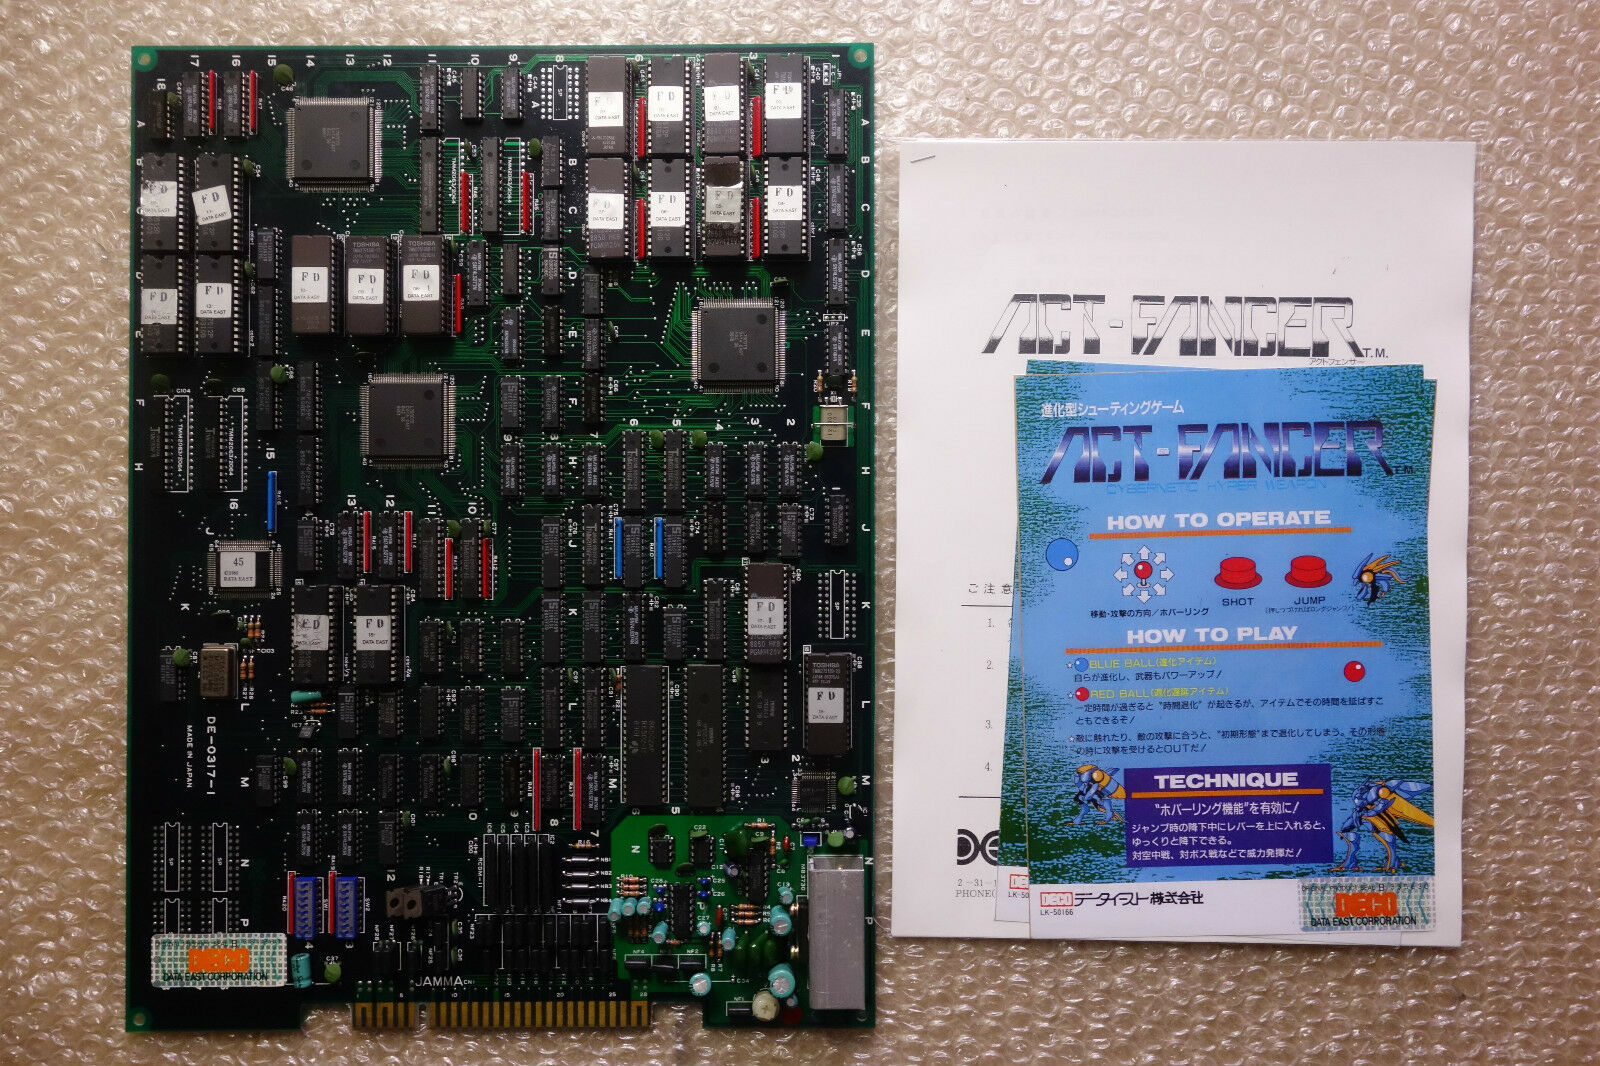 Act-Fancer  Cybernetic Hyper Weapon Weapon Weapon Jamma PCB Original Arcade Game Japan f42443